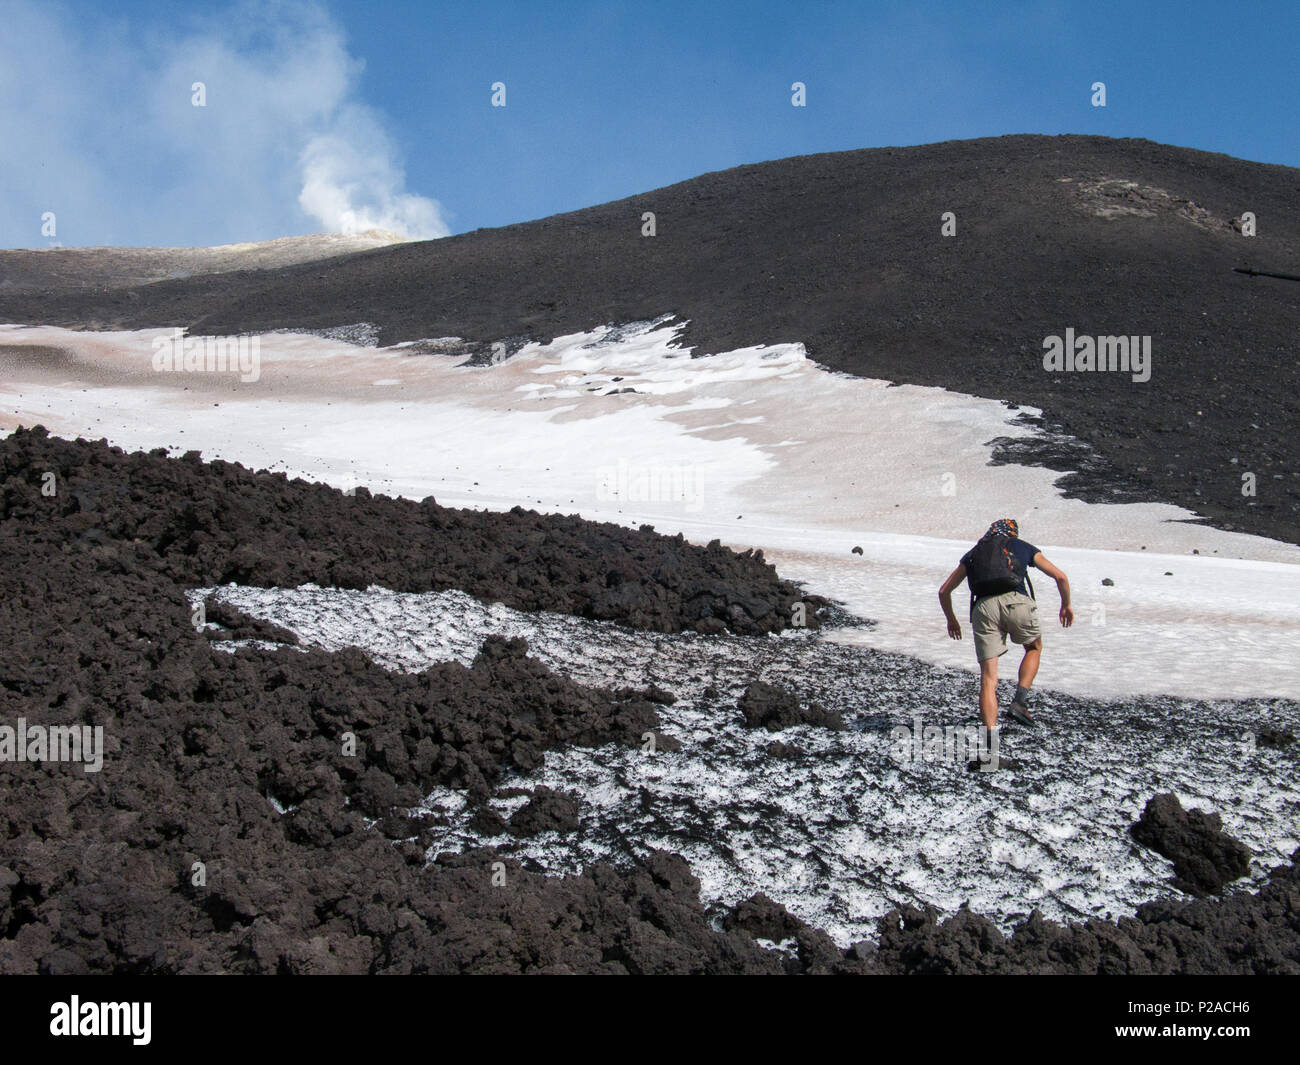 To the top of the Etna volcano, Hikers go on the lava fields to the summit of Etna - Stock Image